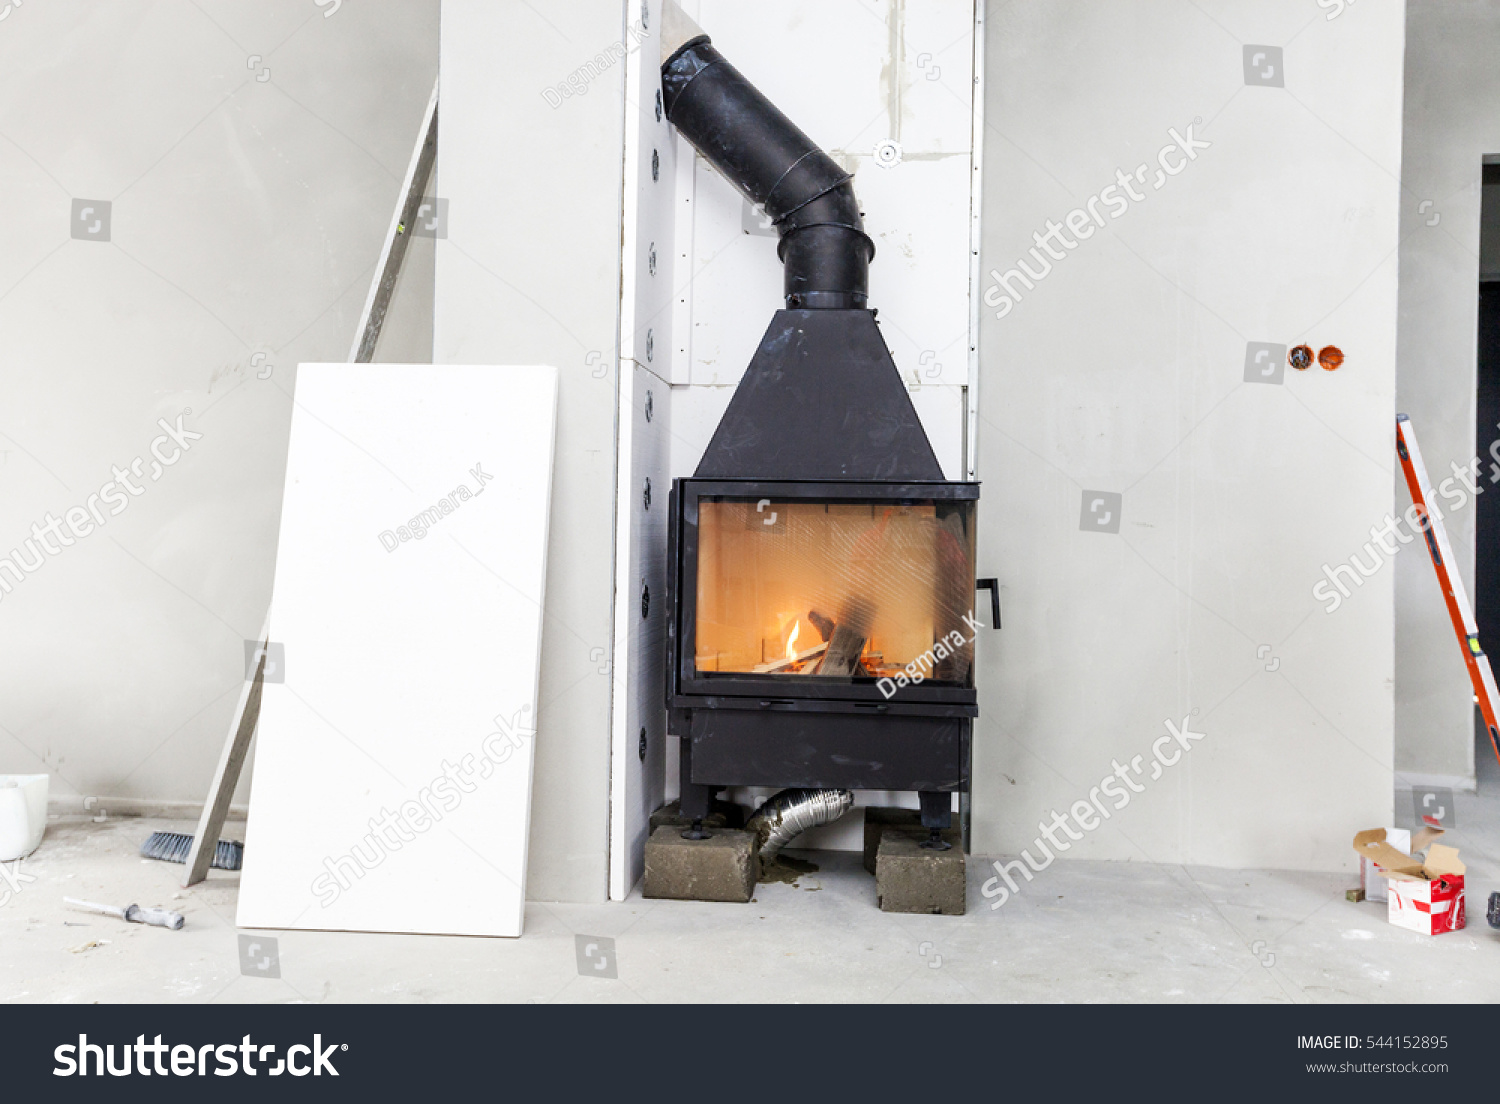 fireplace installing fireplace made calcium silicate stock photo